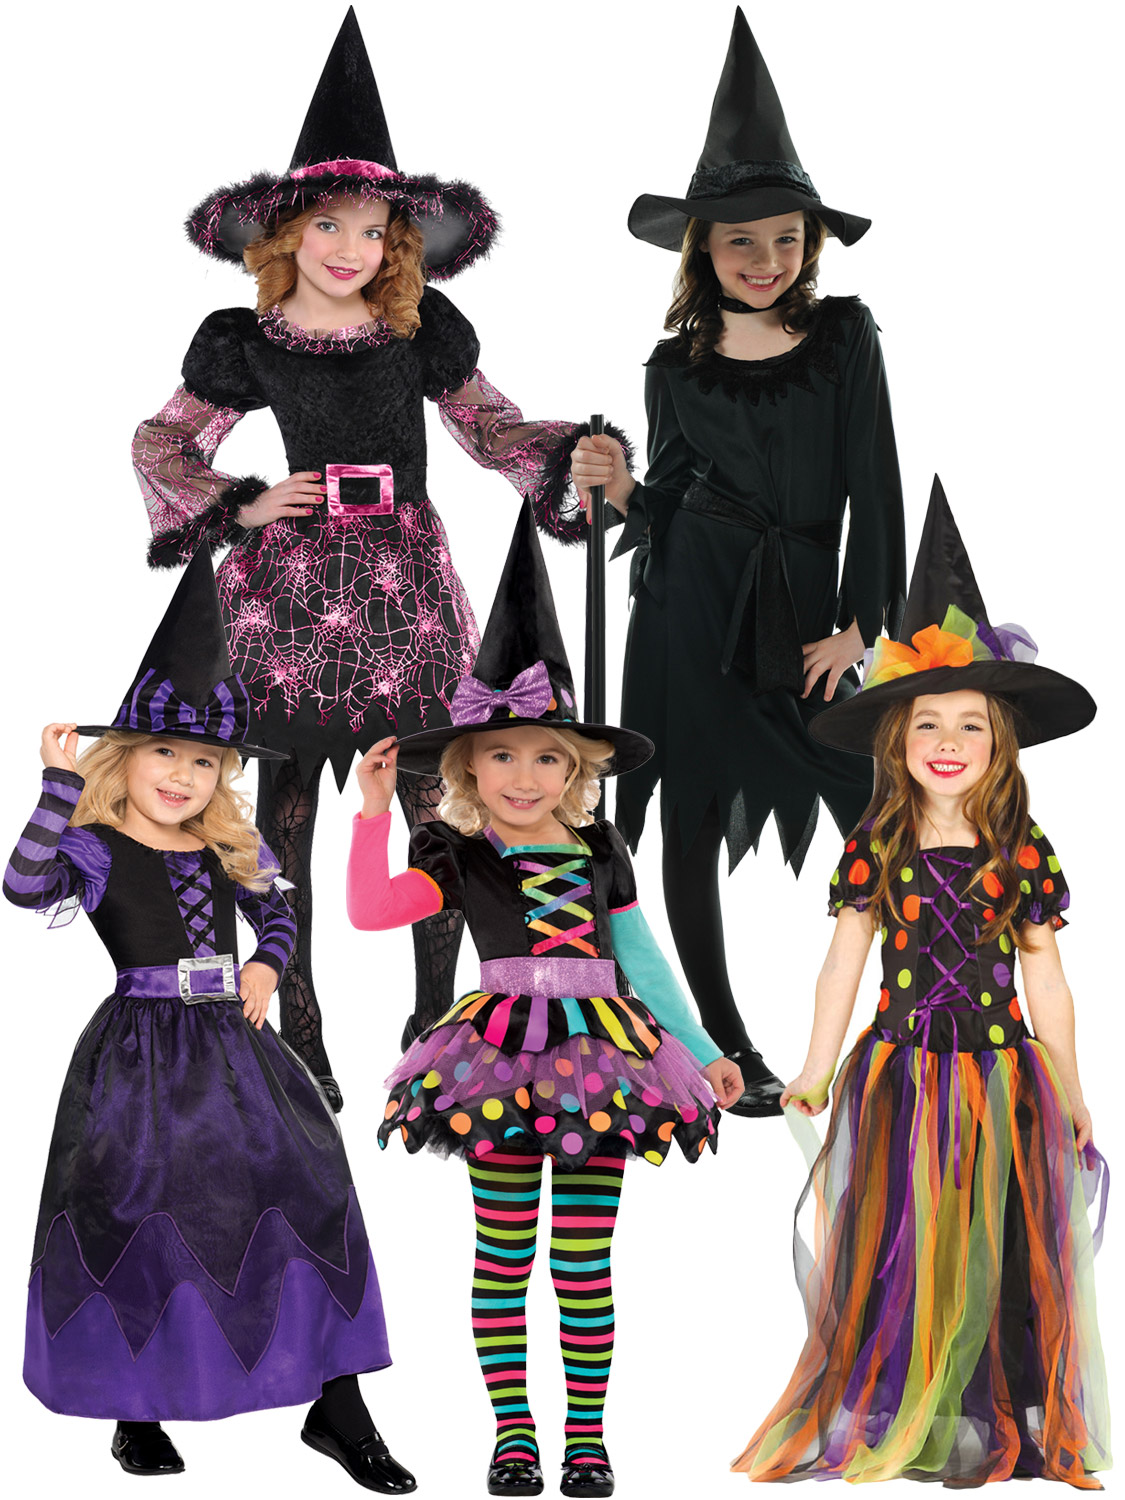 Kids' party clothes With adorable girls' party dresses, smart shirts and trousers for boys, plus designer styles for babies, we have kids' parties and special occasions covered with our stylish selection of kids' party outfits.